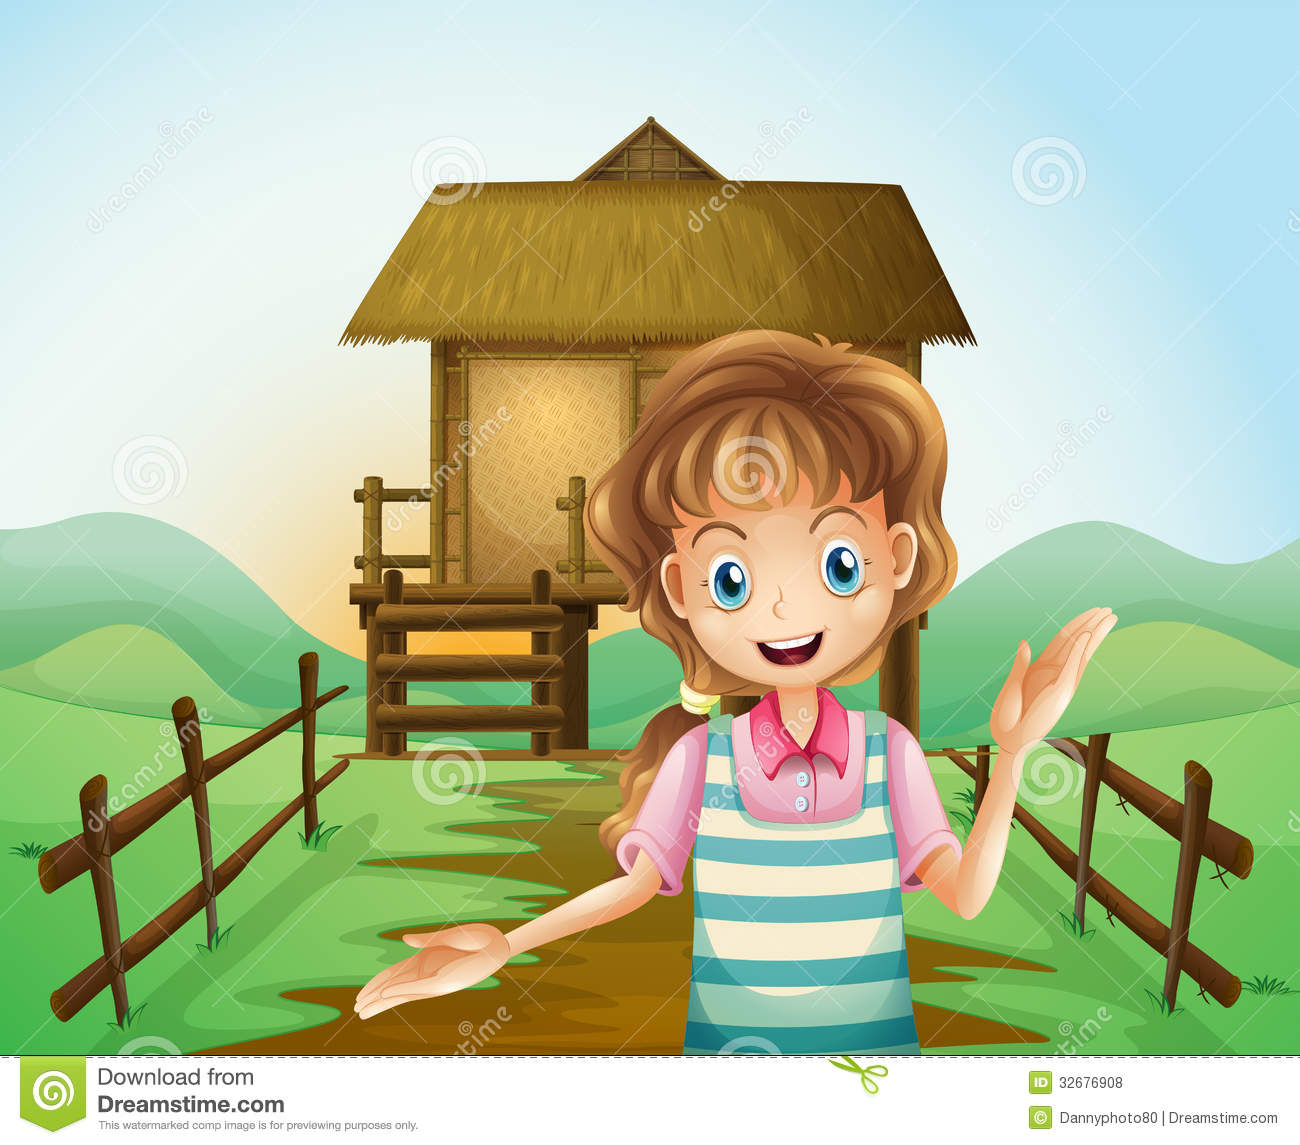 A Farm With Nipa Huts Vector Illustration Cartoondealer